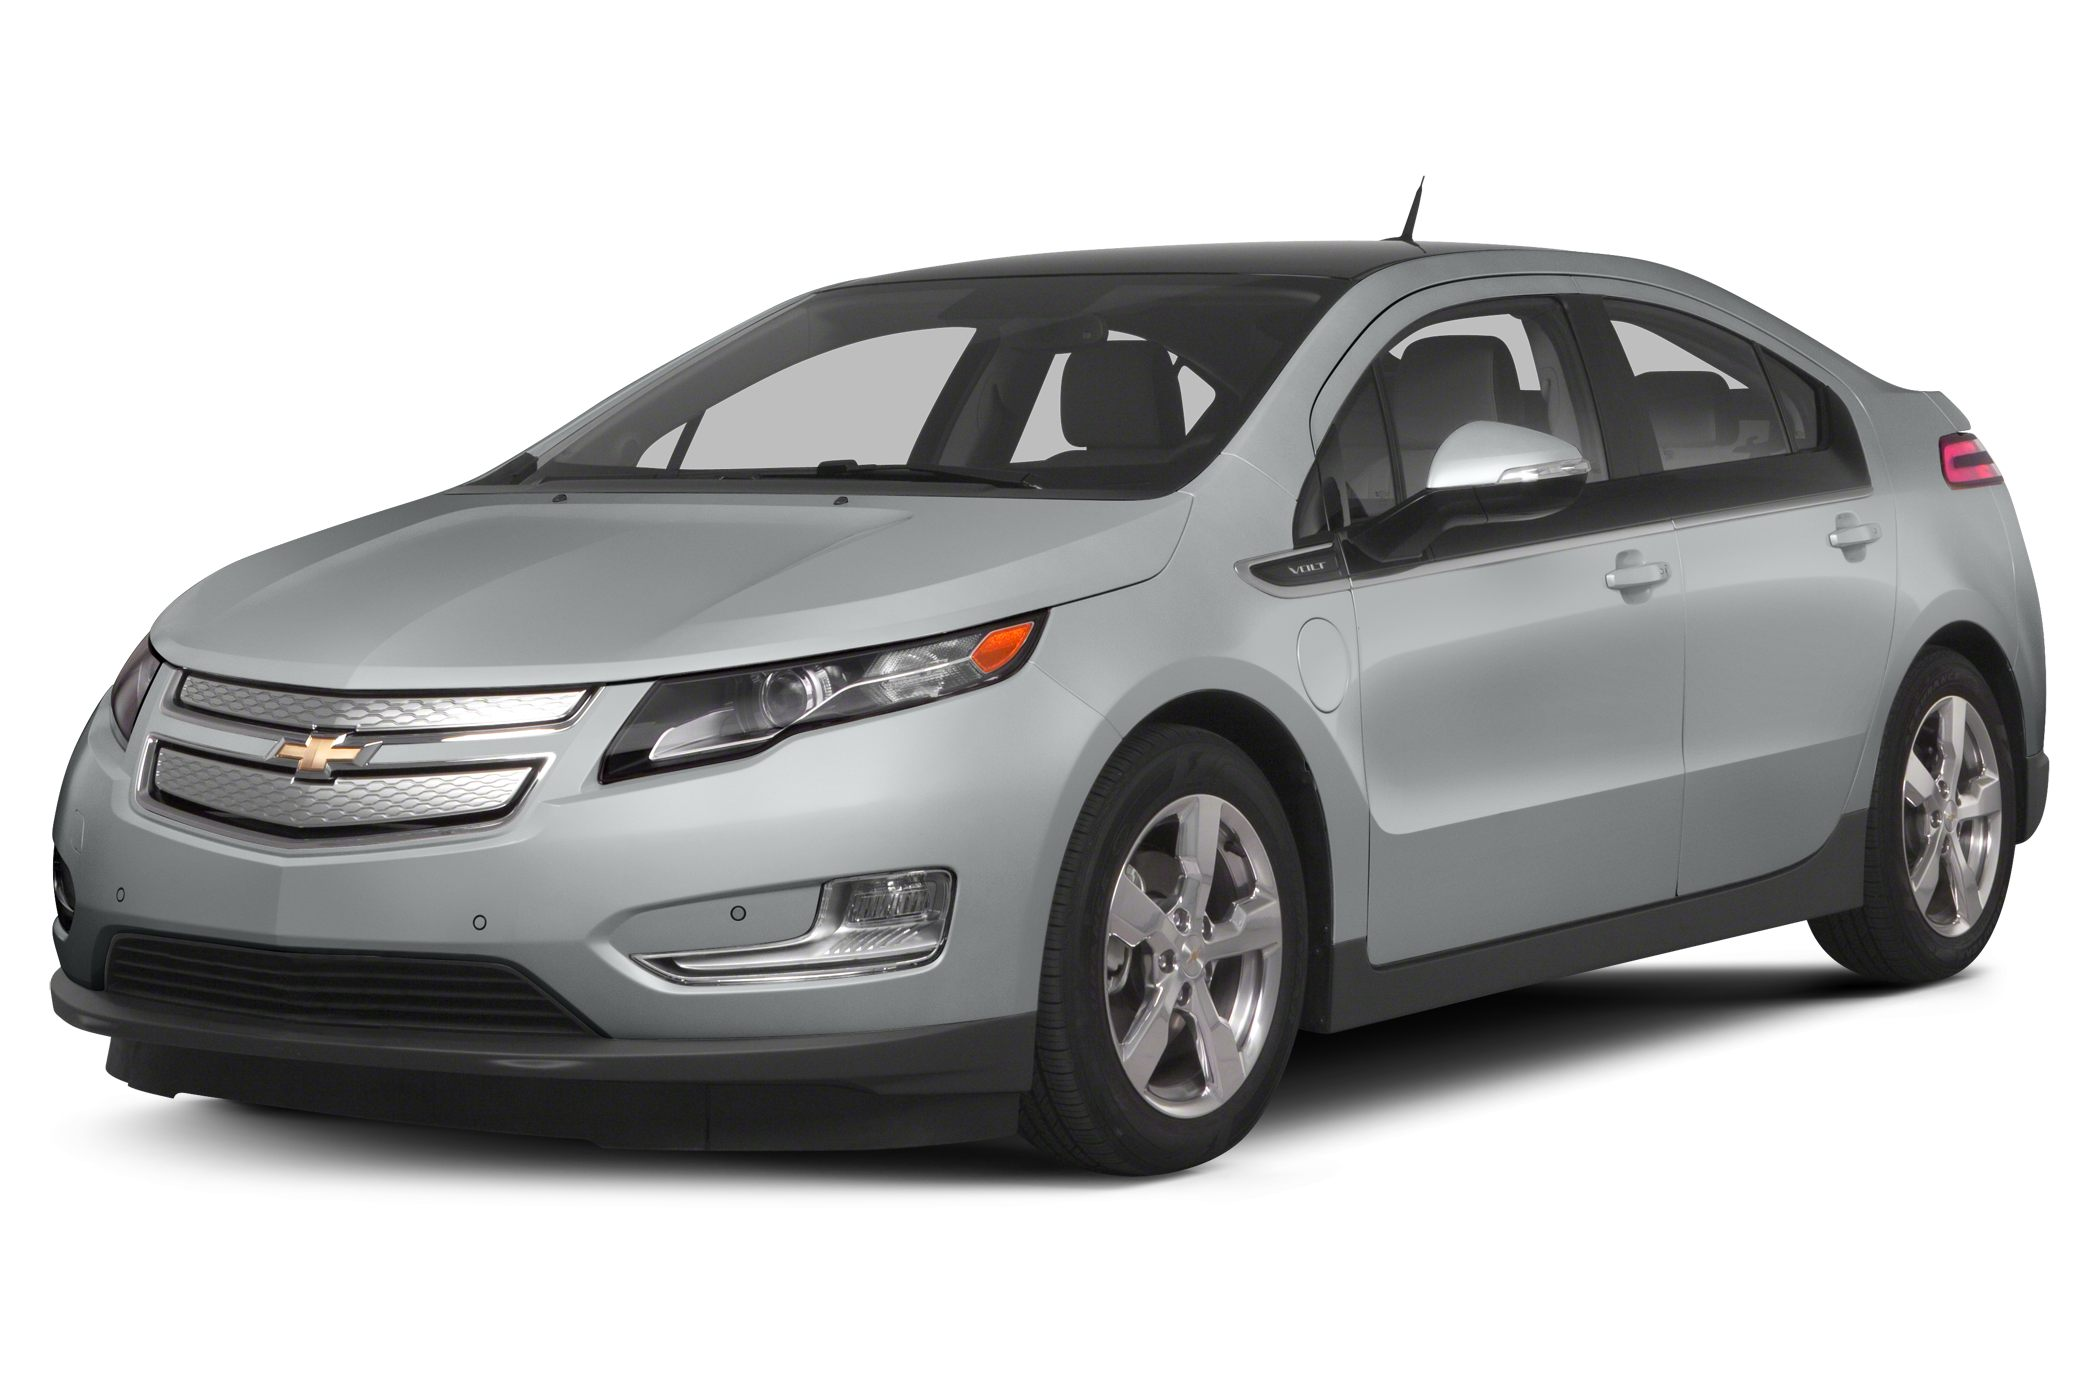 2014 Chevrolet Volt Base Hatchback for sale in San Diego for $39,715 with 0 miles